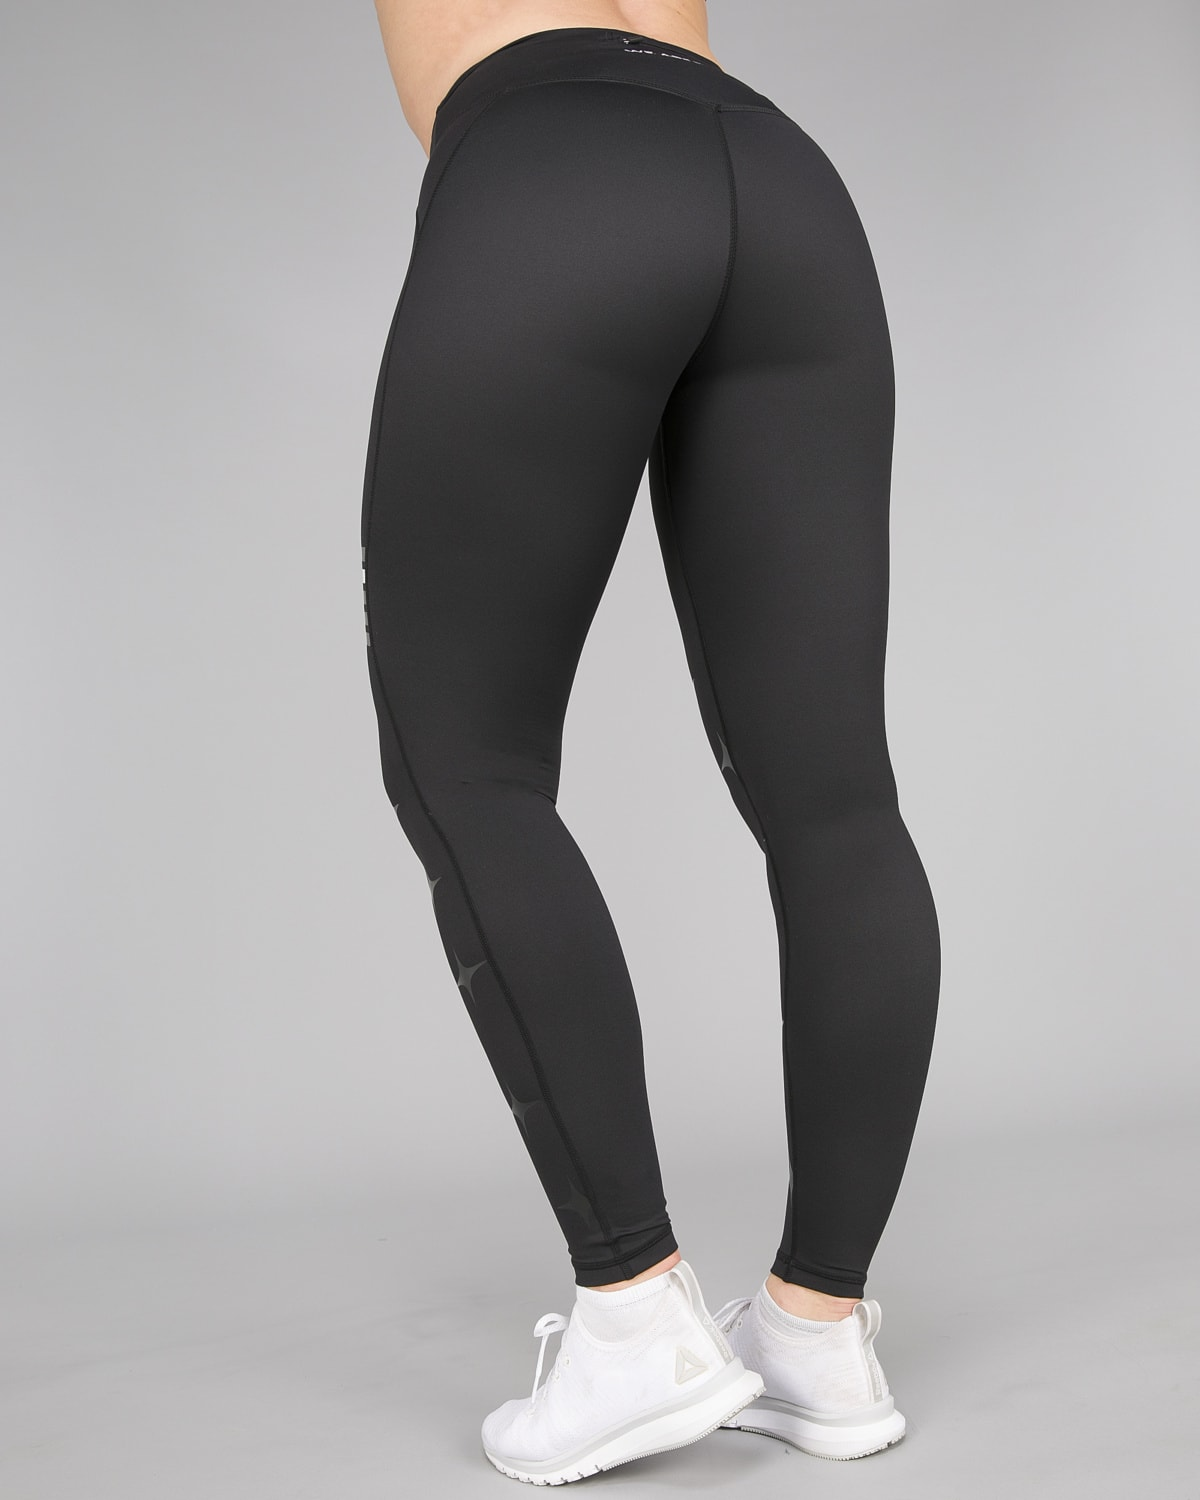 We Are Fit Star Black Tights2